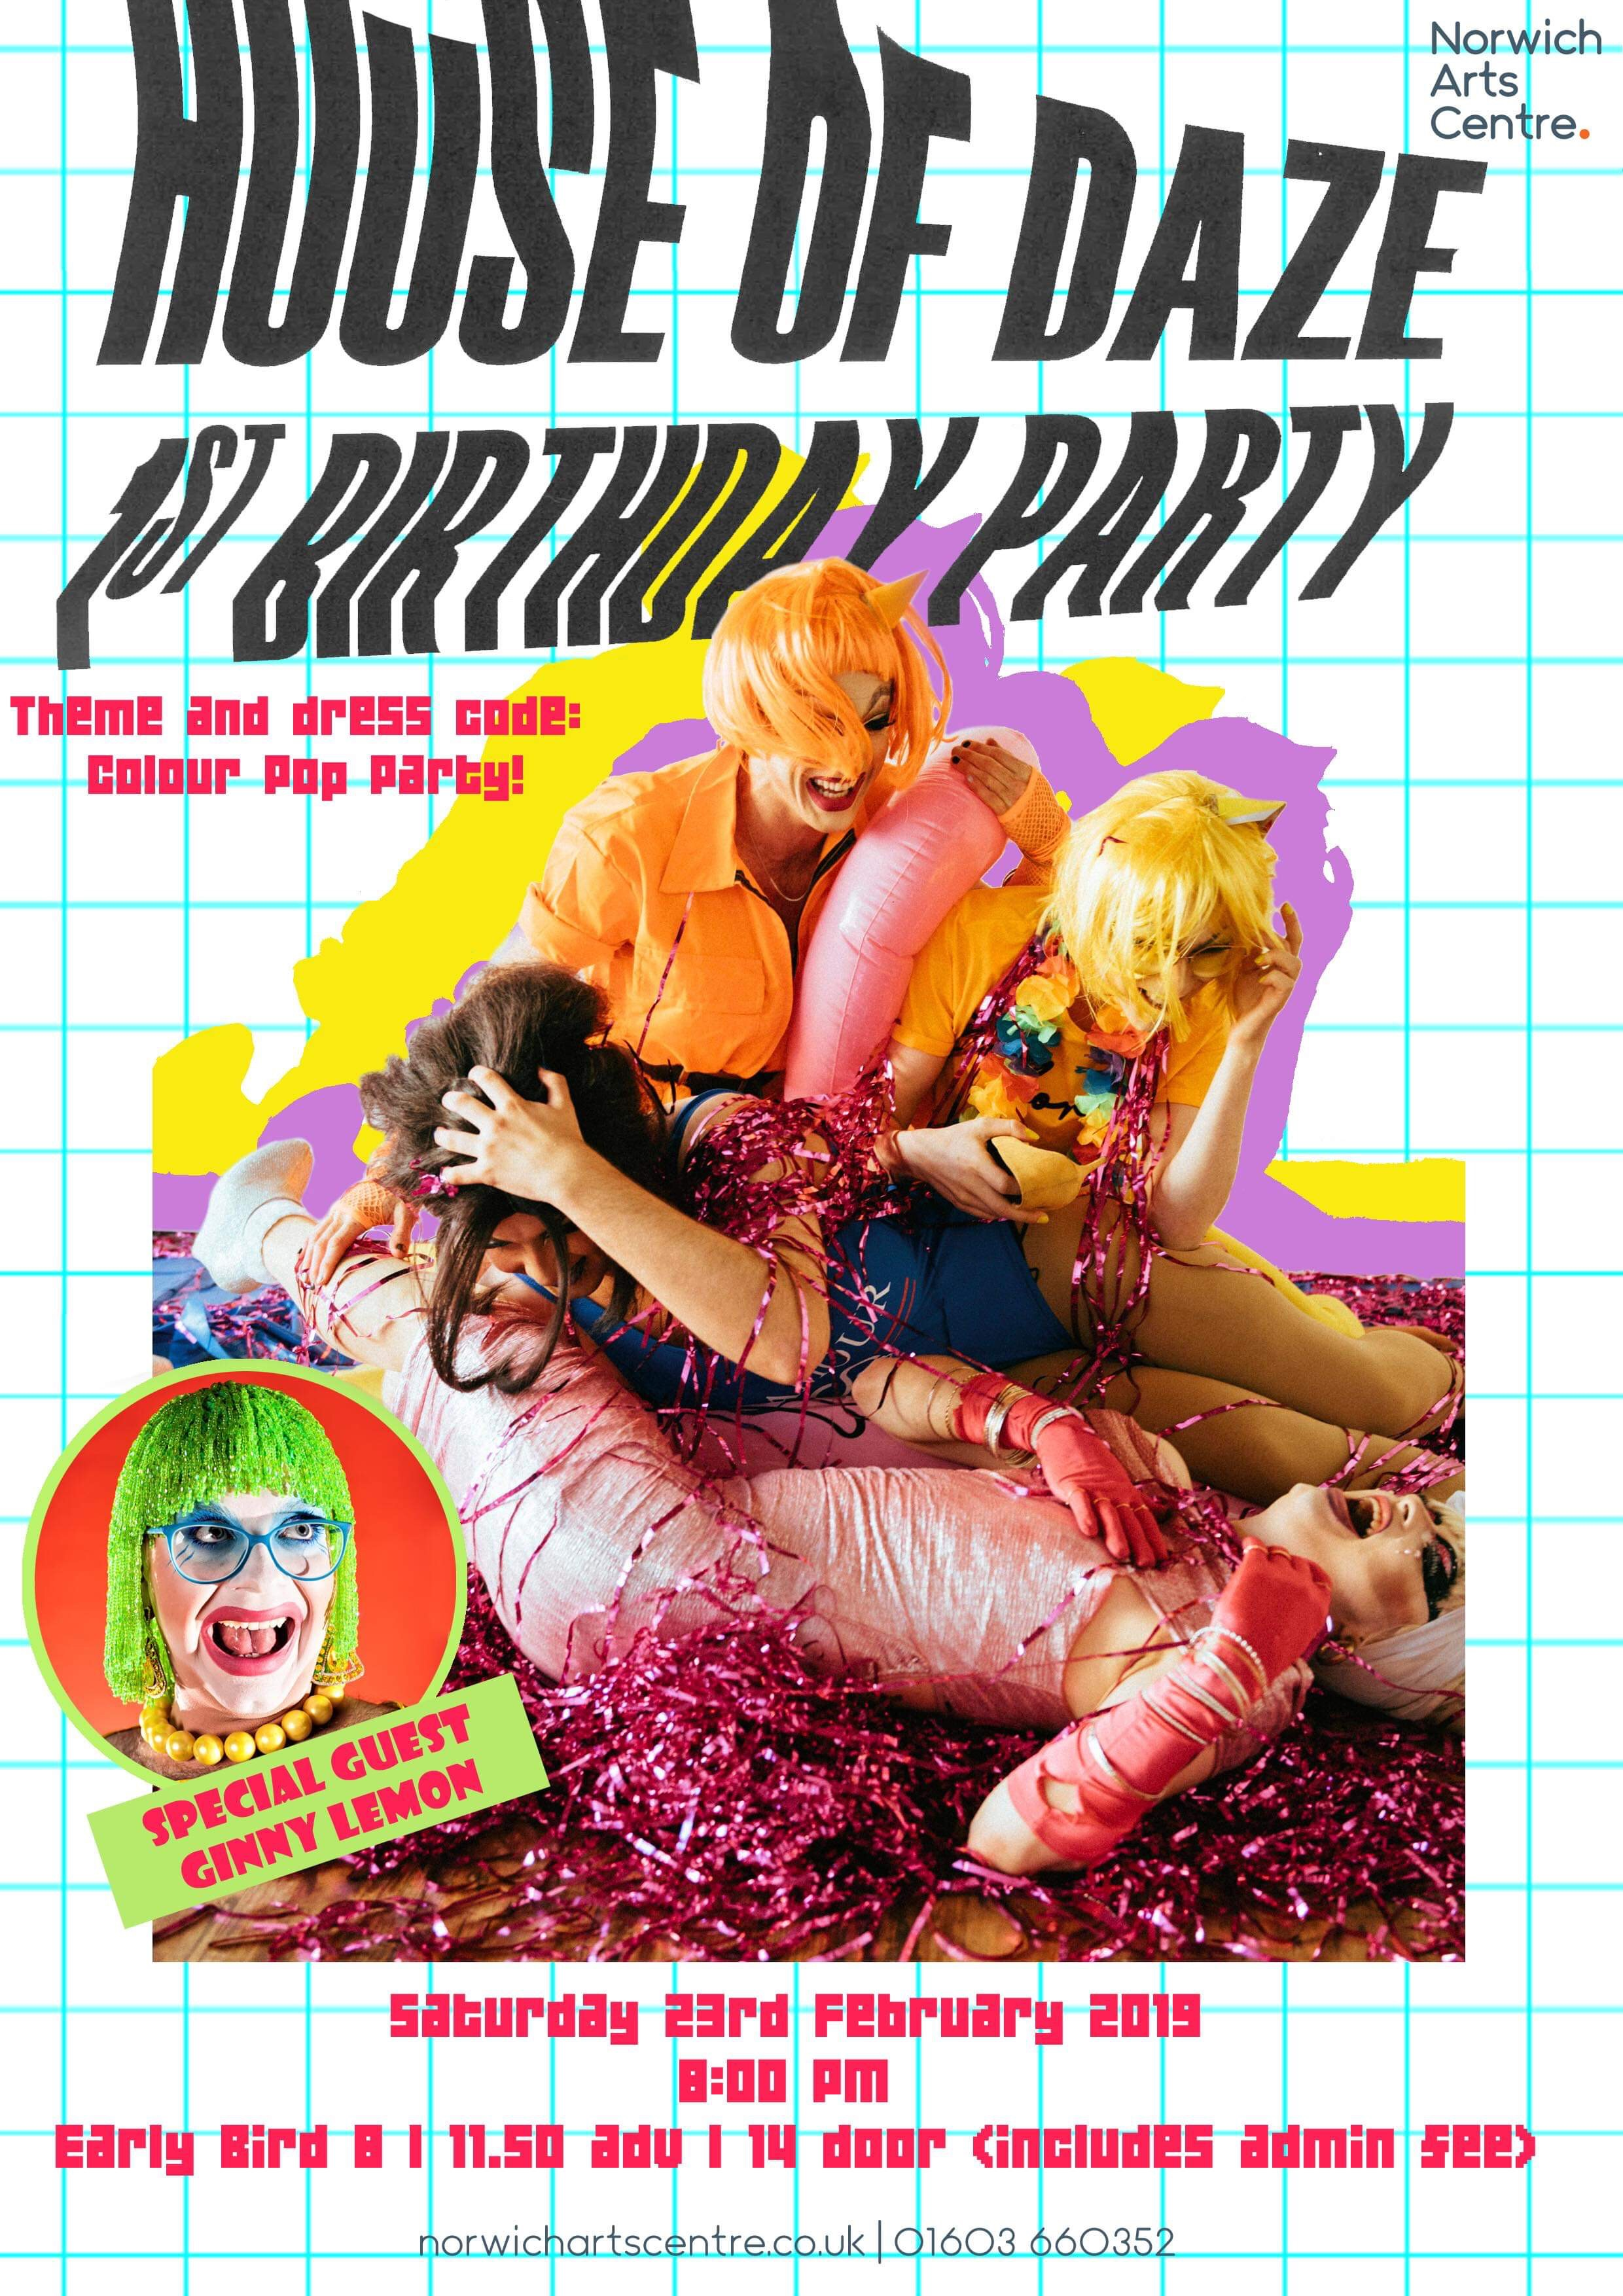 House of Daze Birthday Celebration Poster. Credited to The House of Daze